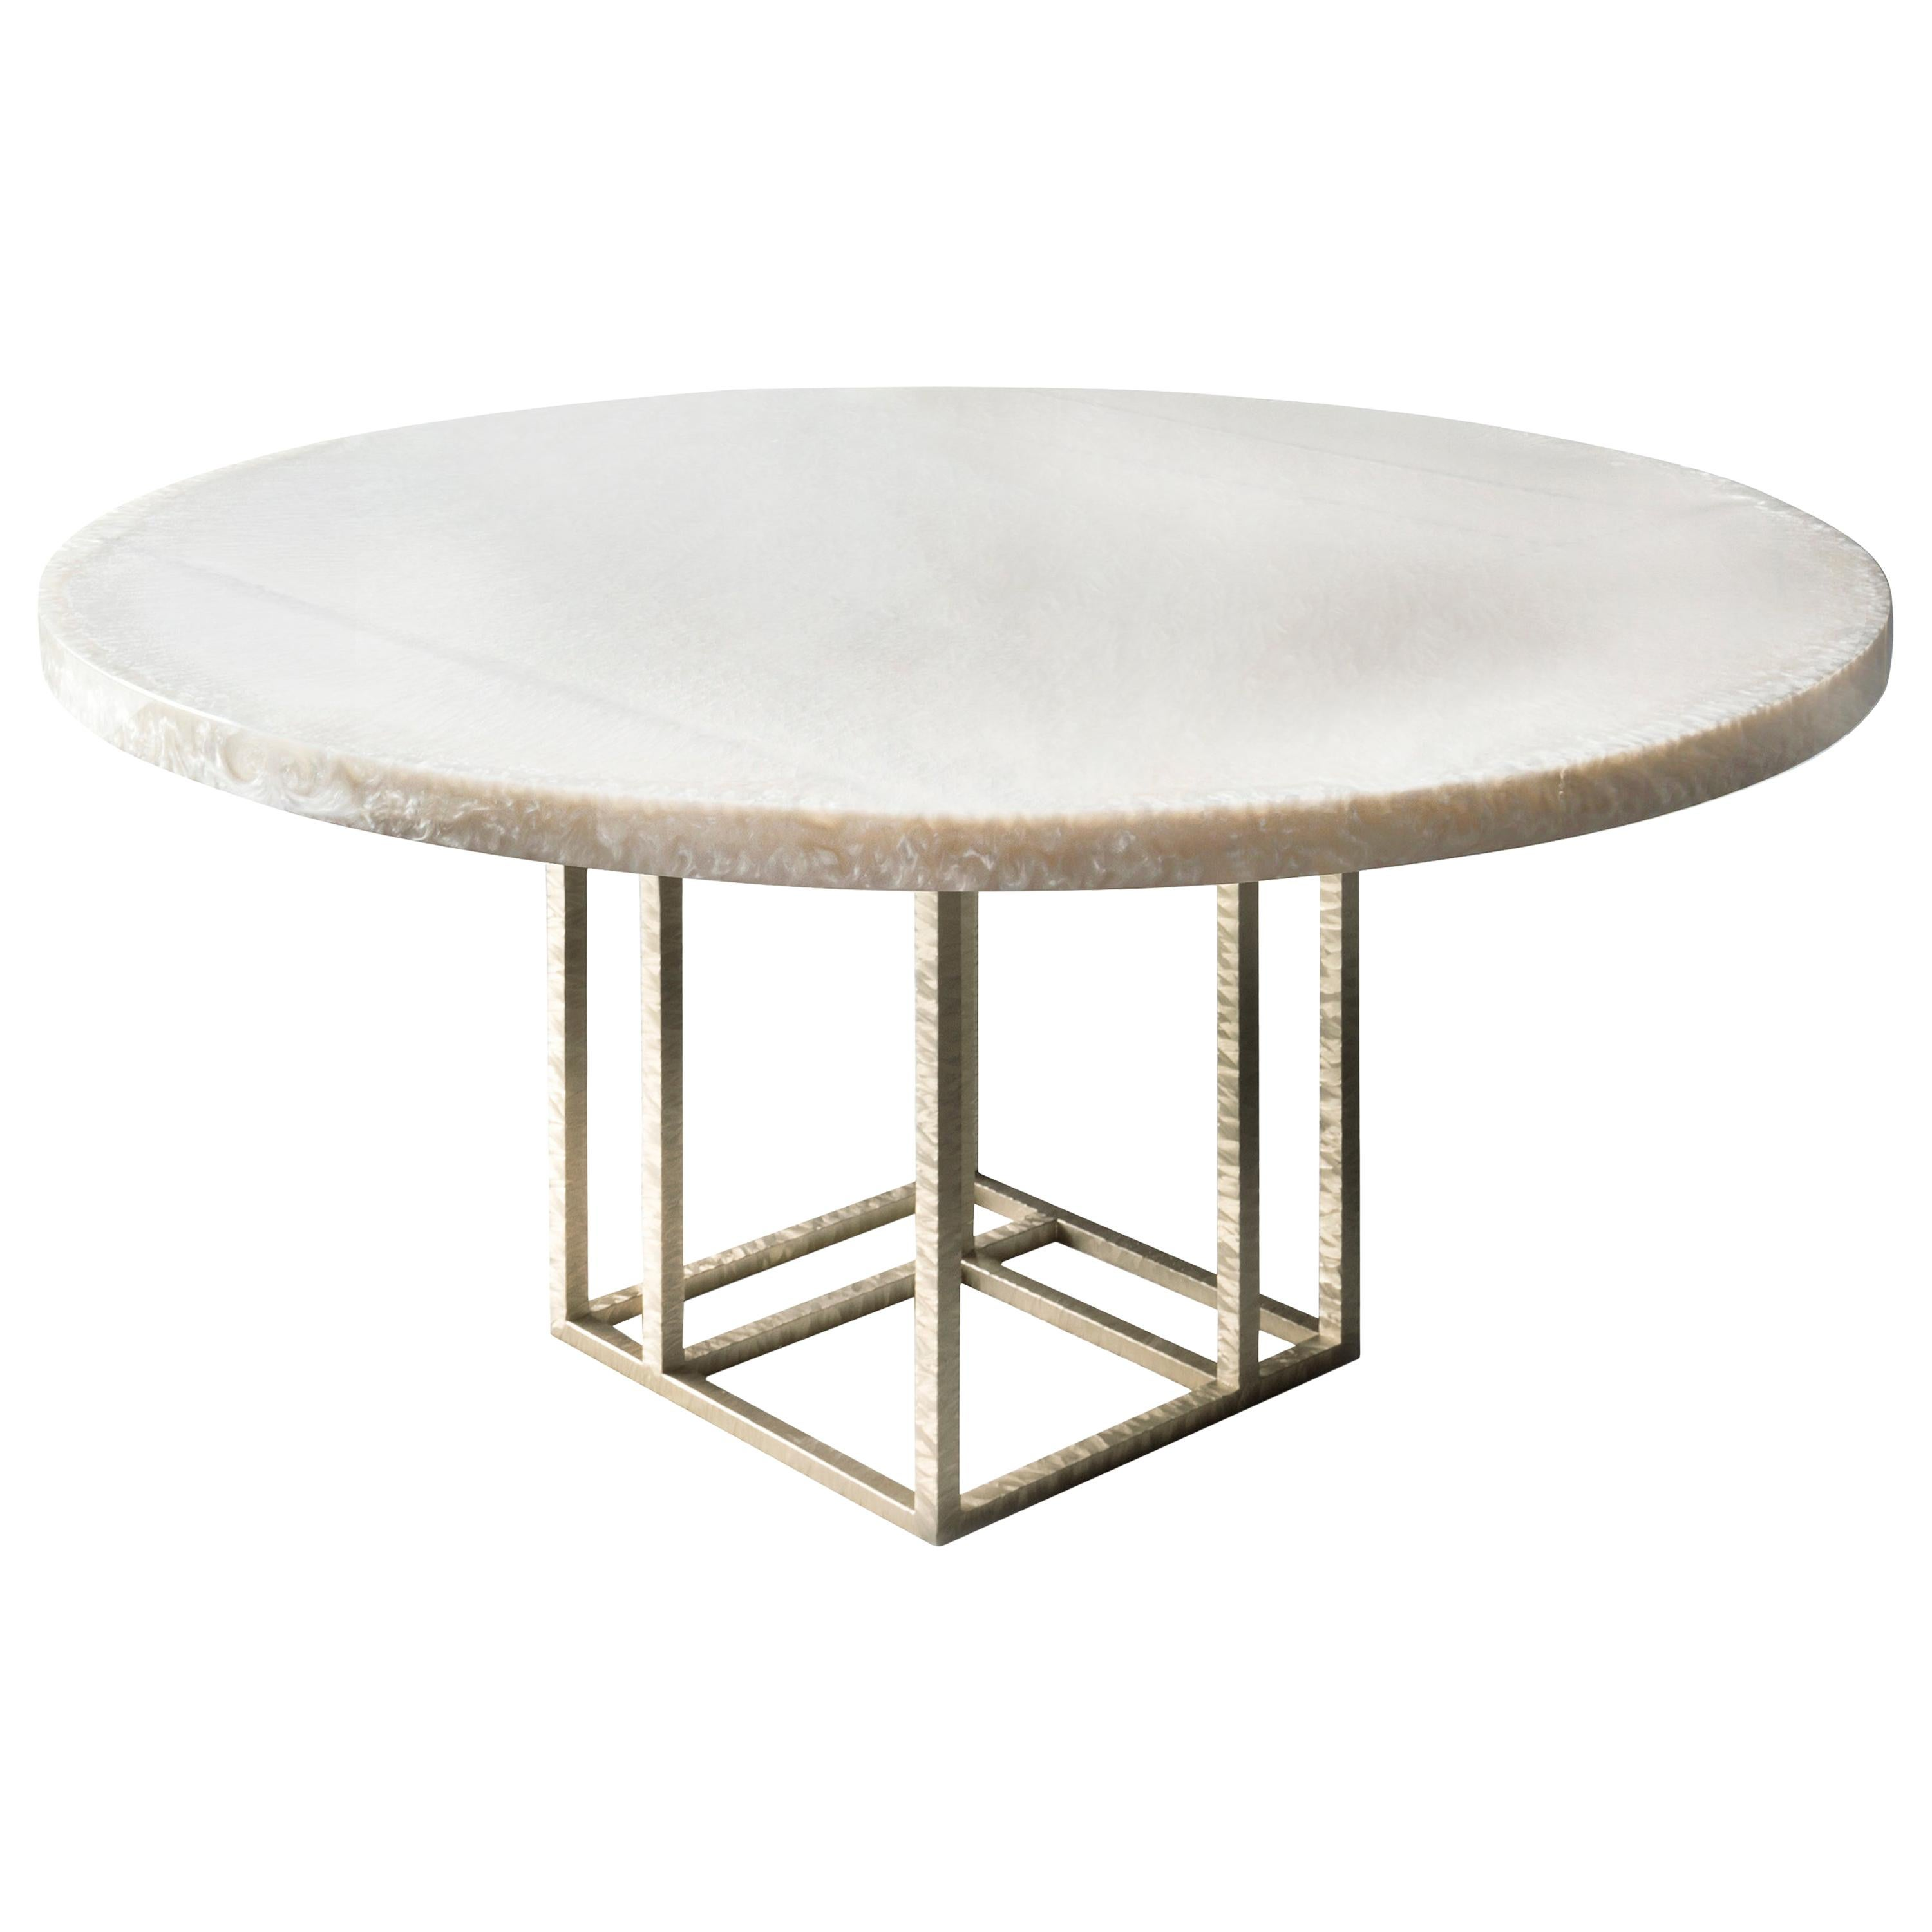 Contemporary Round Dining Table by Hessentia in White Resin and Metal